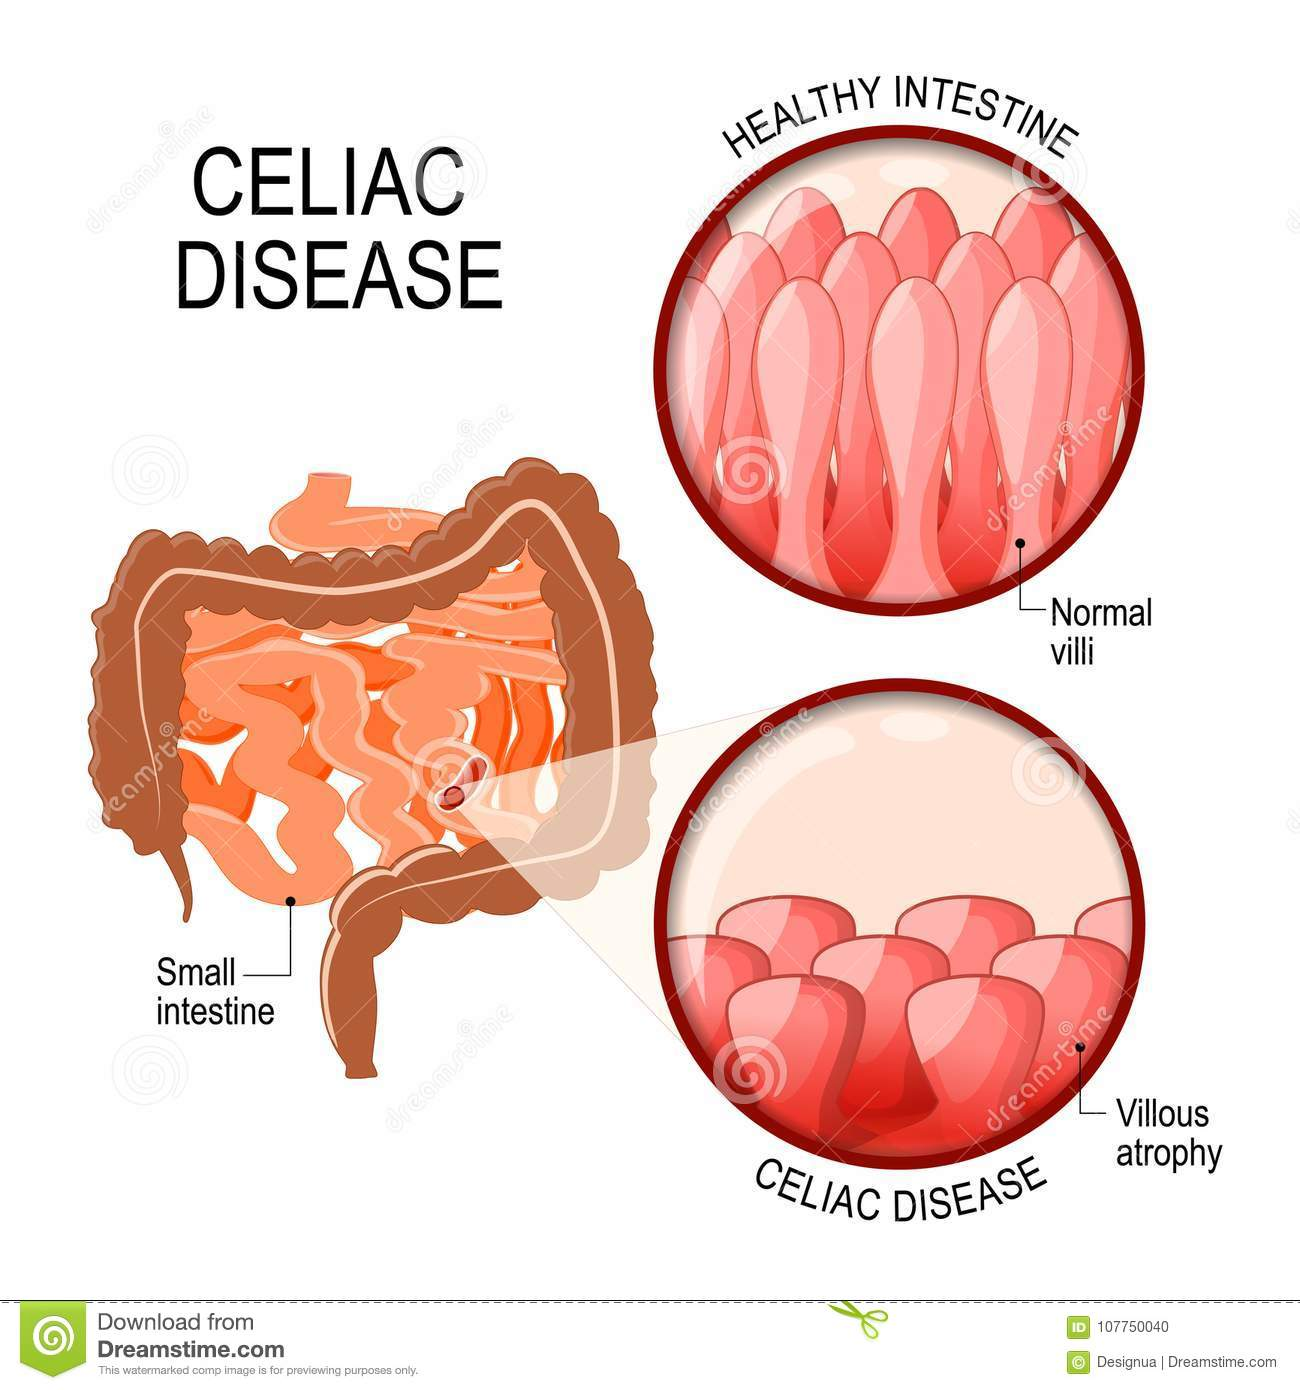 hight resolution of celiac disease small intestinal with normal villi and villous atrophy diagram showing changes in intestinal coeliac disease manifested by blunting of